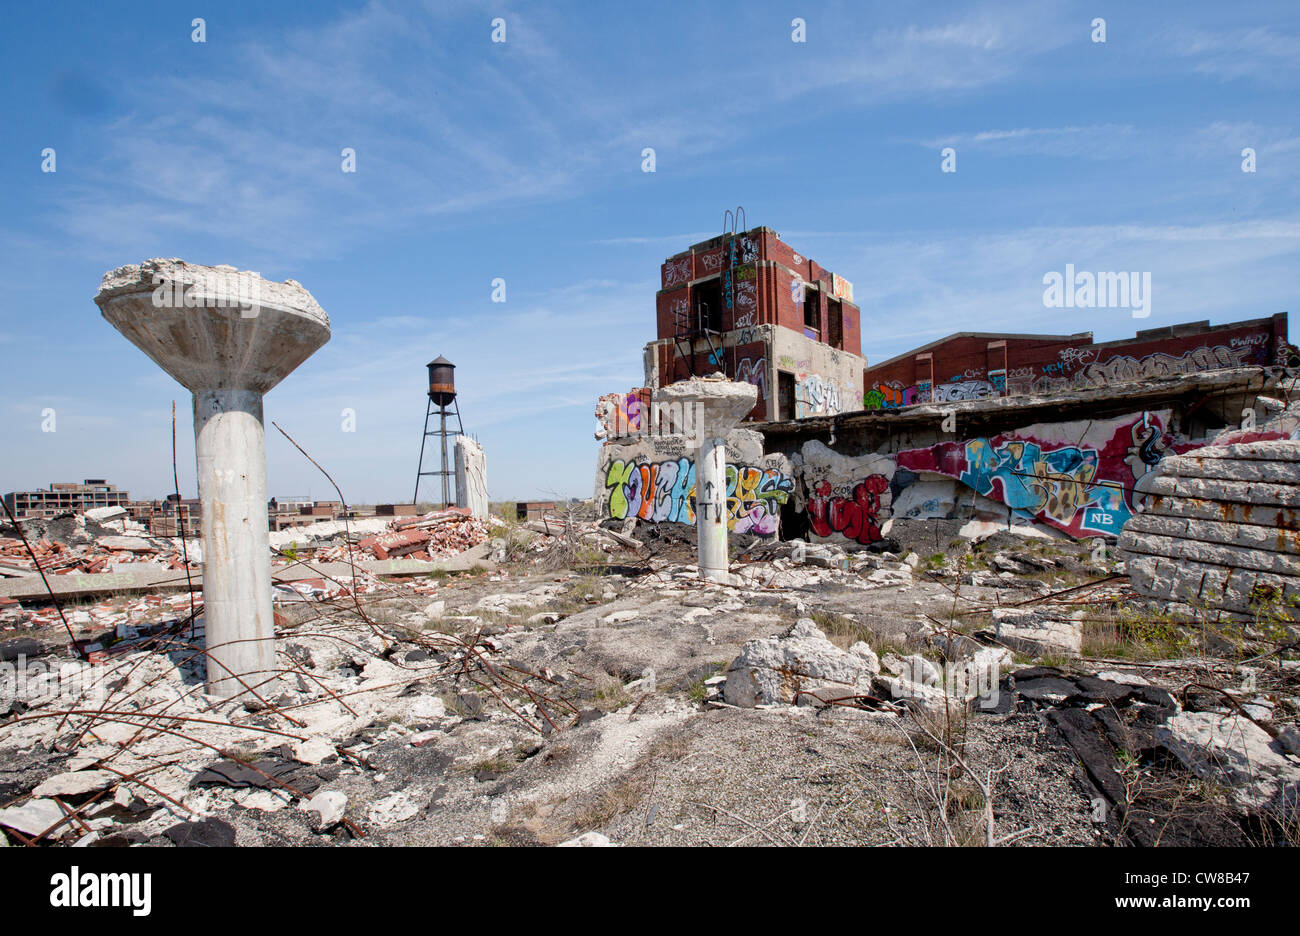 Roof top of an abandoned car manufacturing plant in Detroit Michigan. The ceiling supports have toppled over graffiti - Stock Image